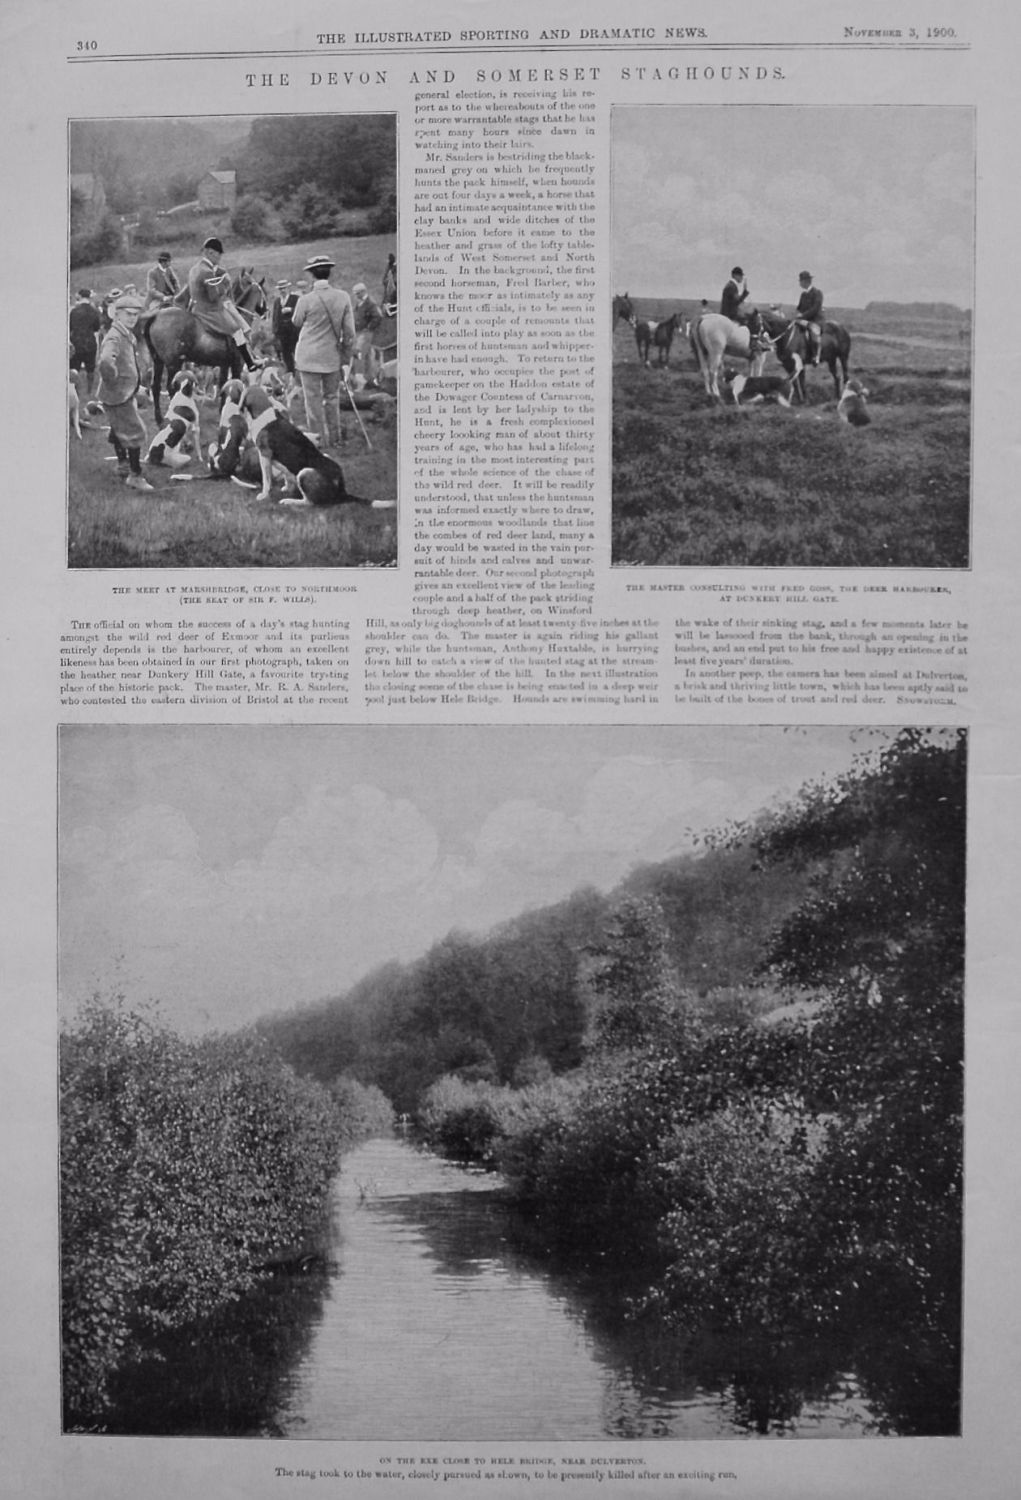 Devon and Somerset Staghounds. 1900